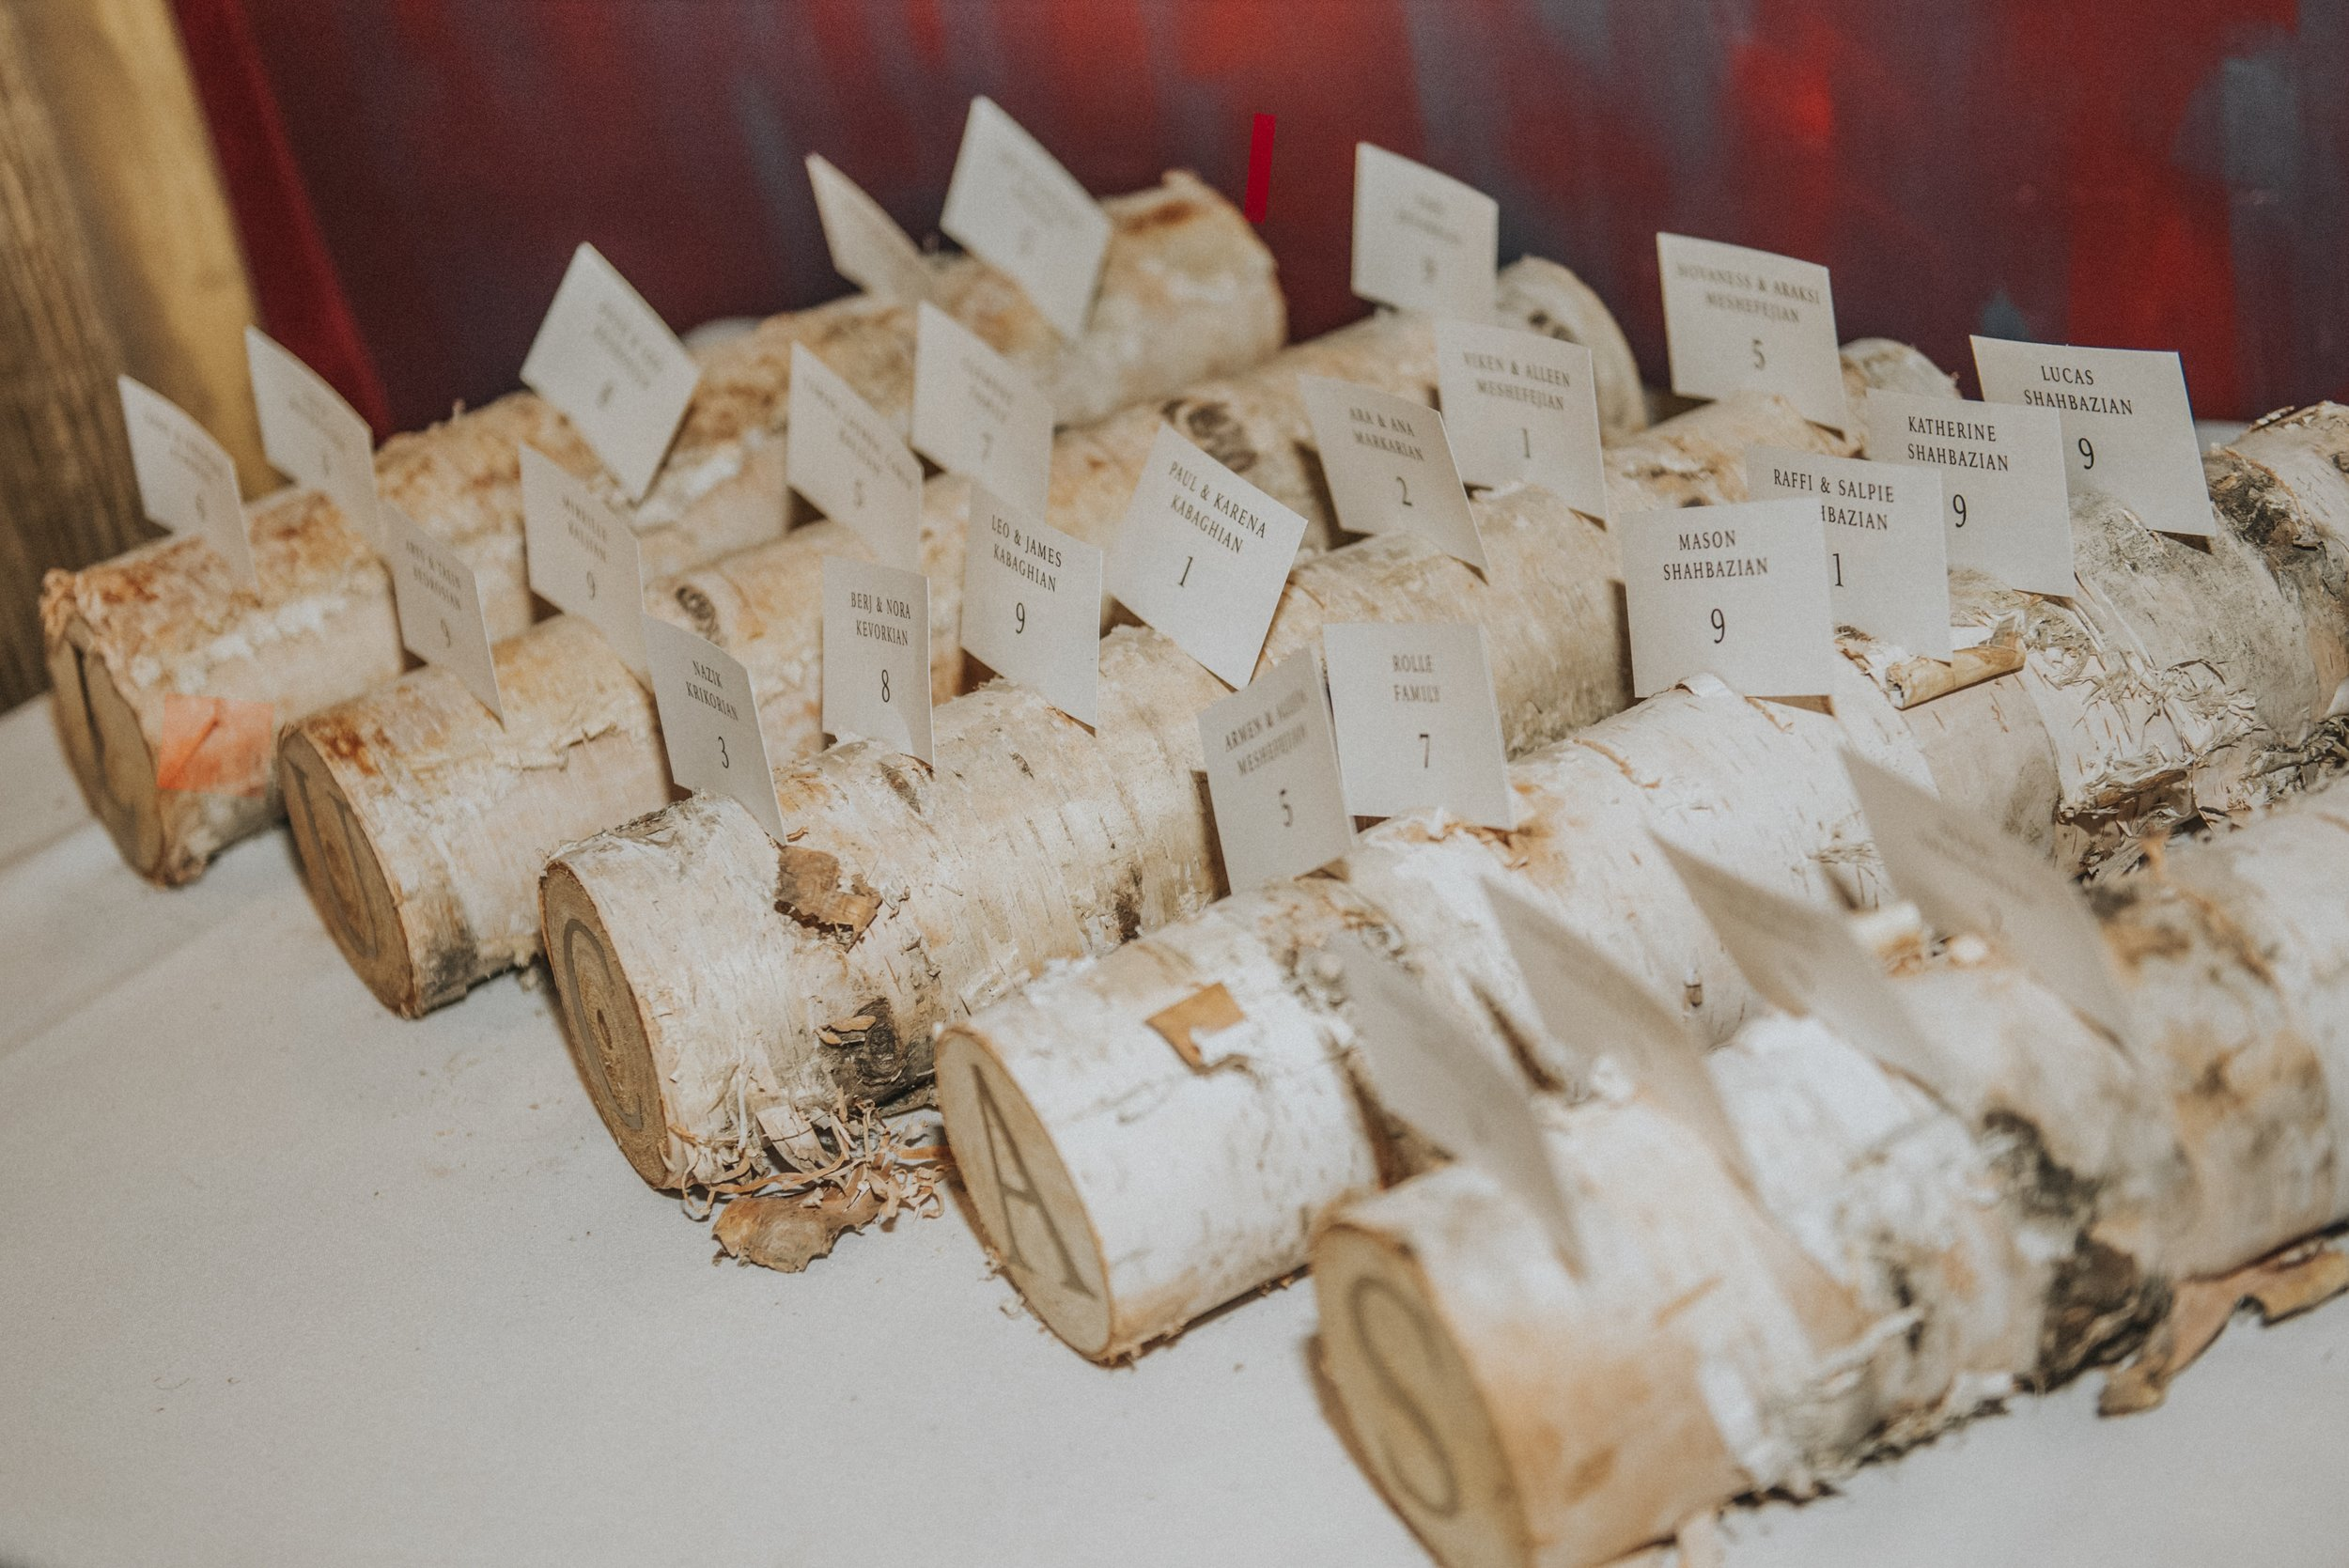 Birch logs as placecard holders